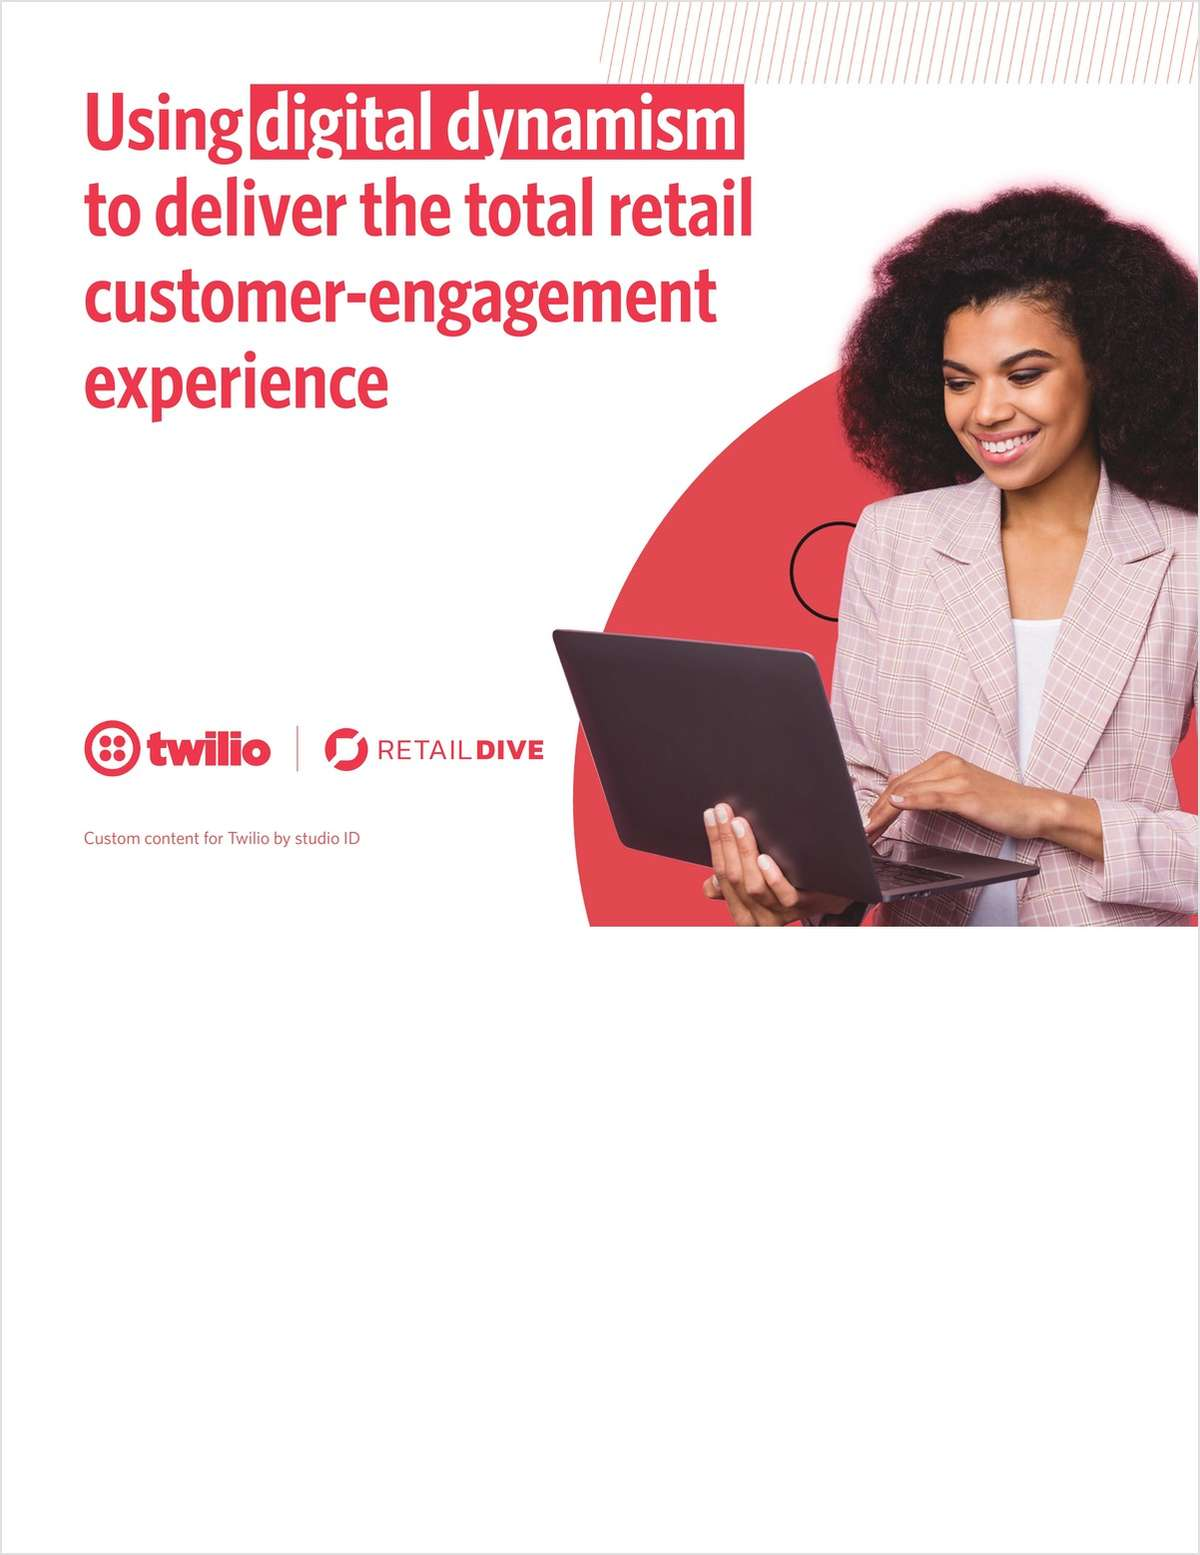 How to Deliver the Total Customer-engagement Experience